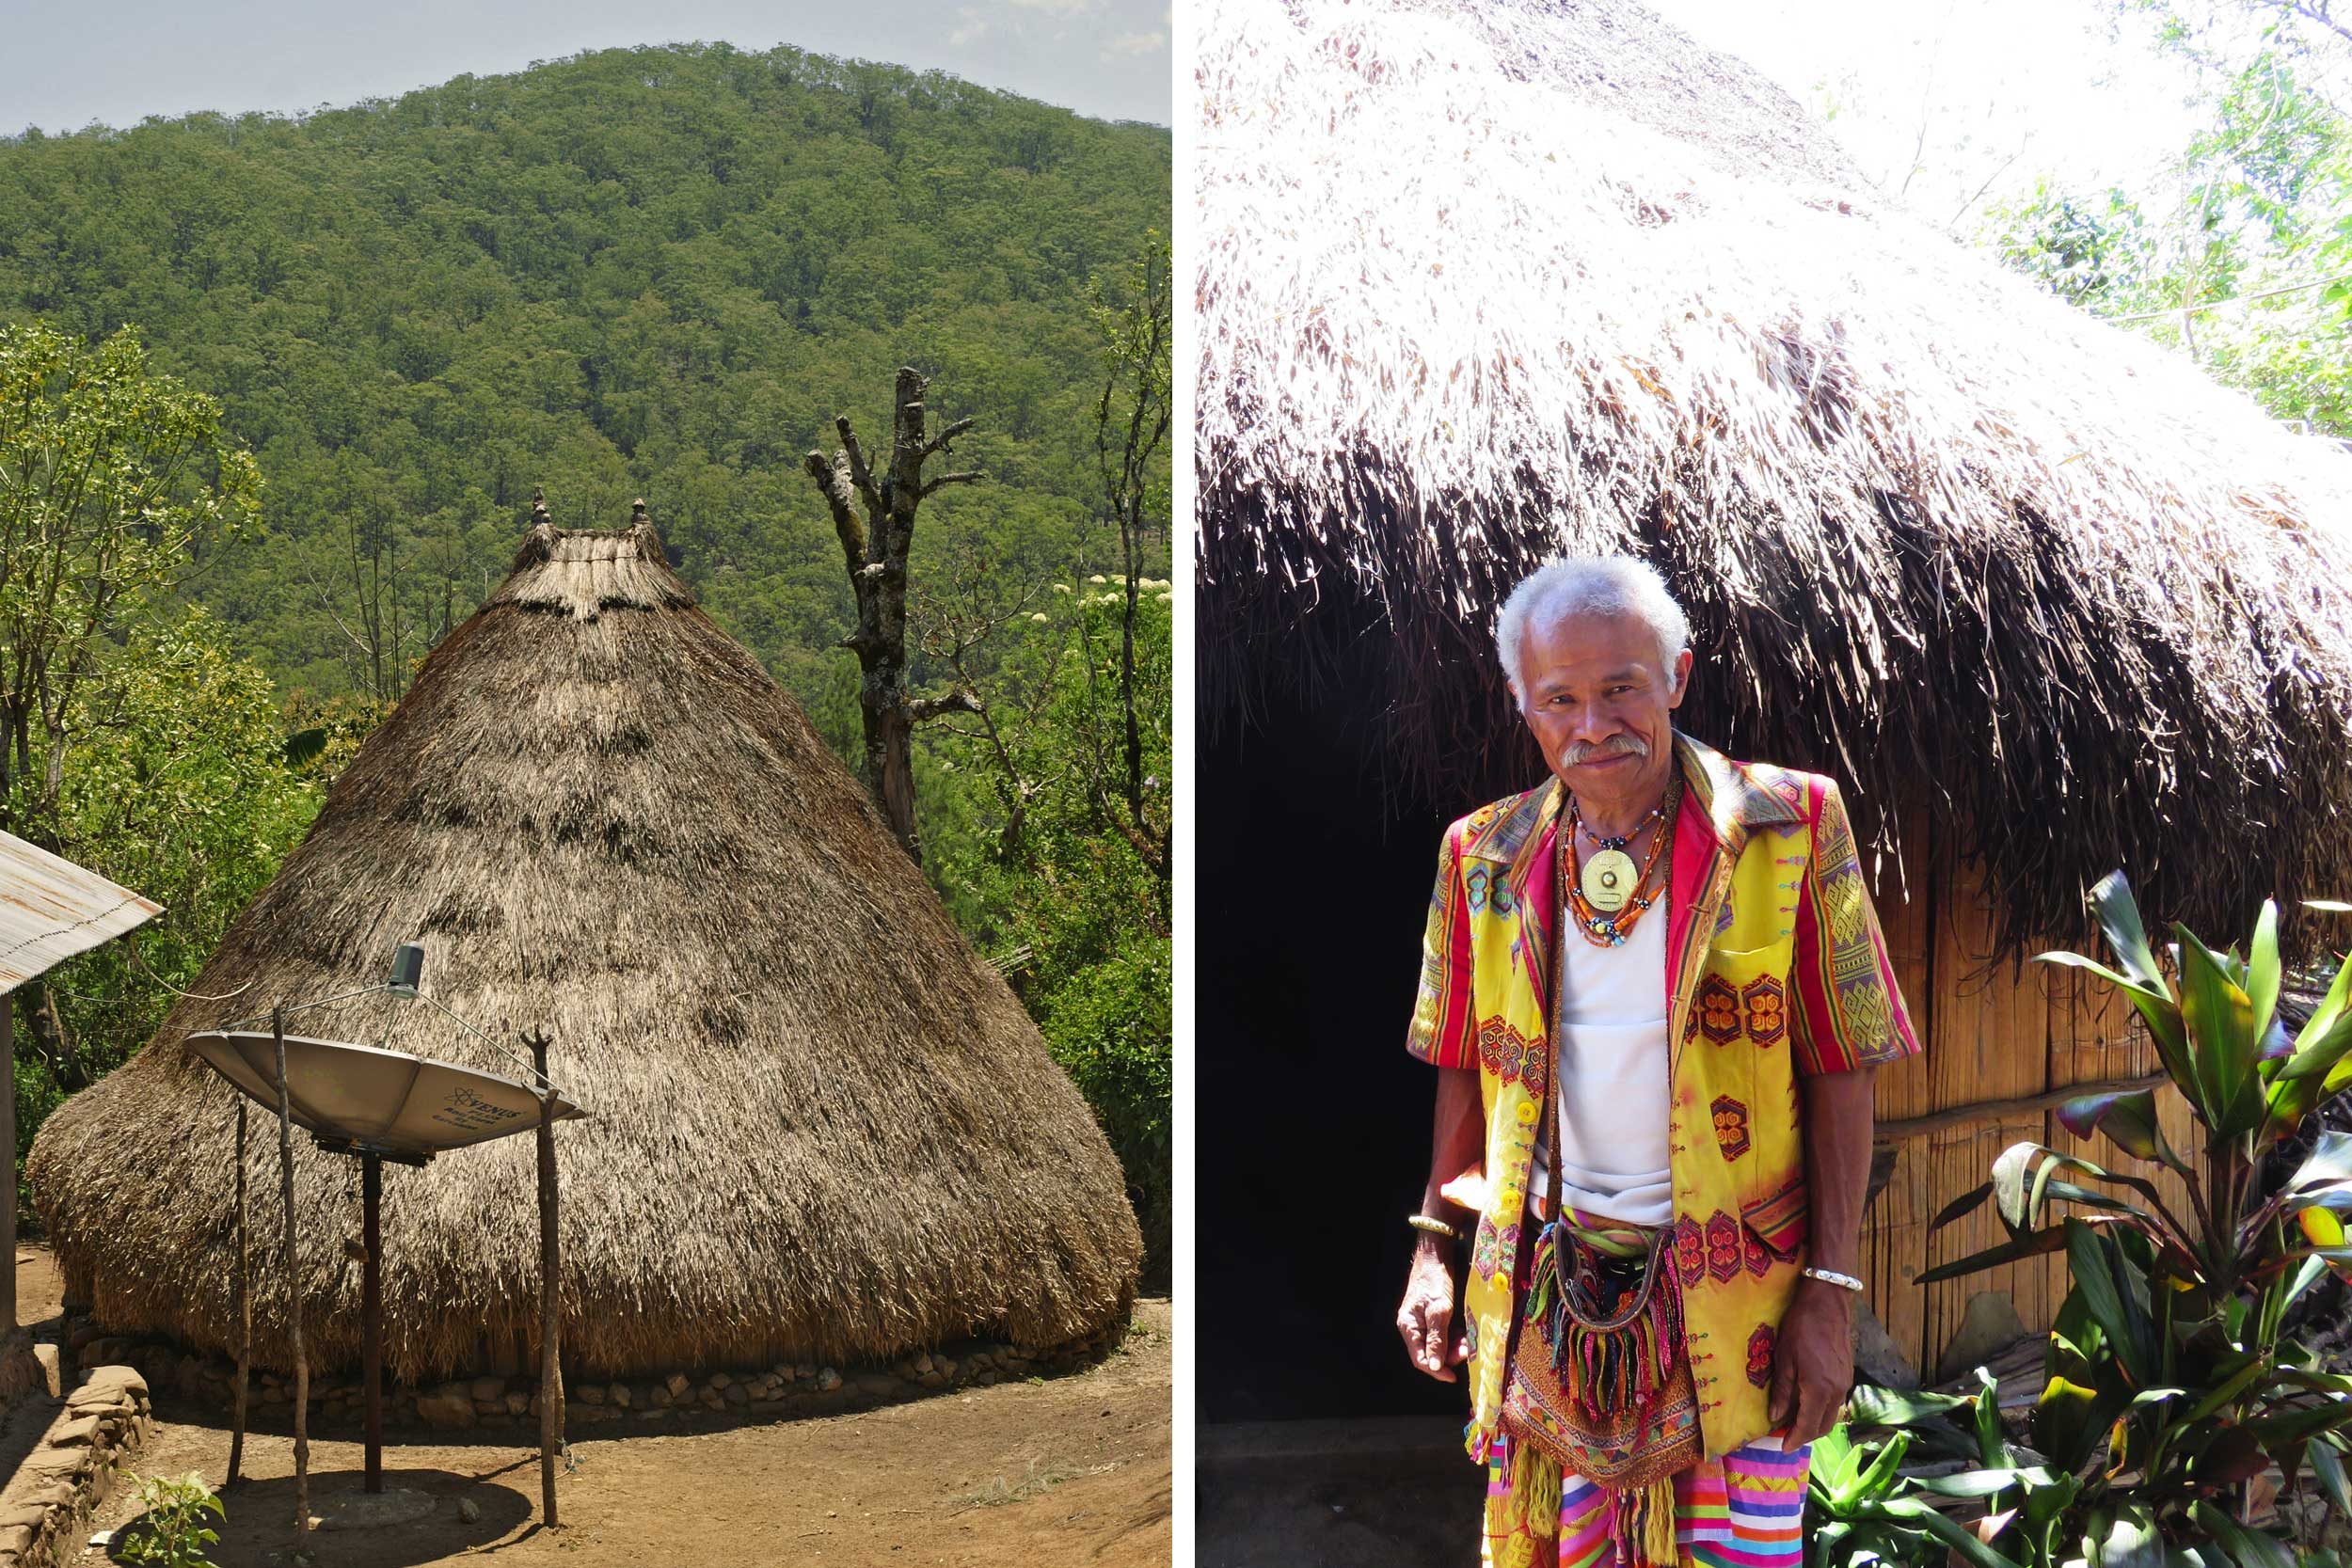 Montage of a dome-shaped thatched hut with a satellite dish next to it and an elderly man dressed traditionally outside his hut, West Timor